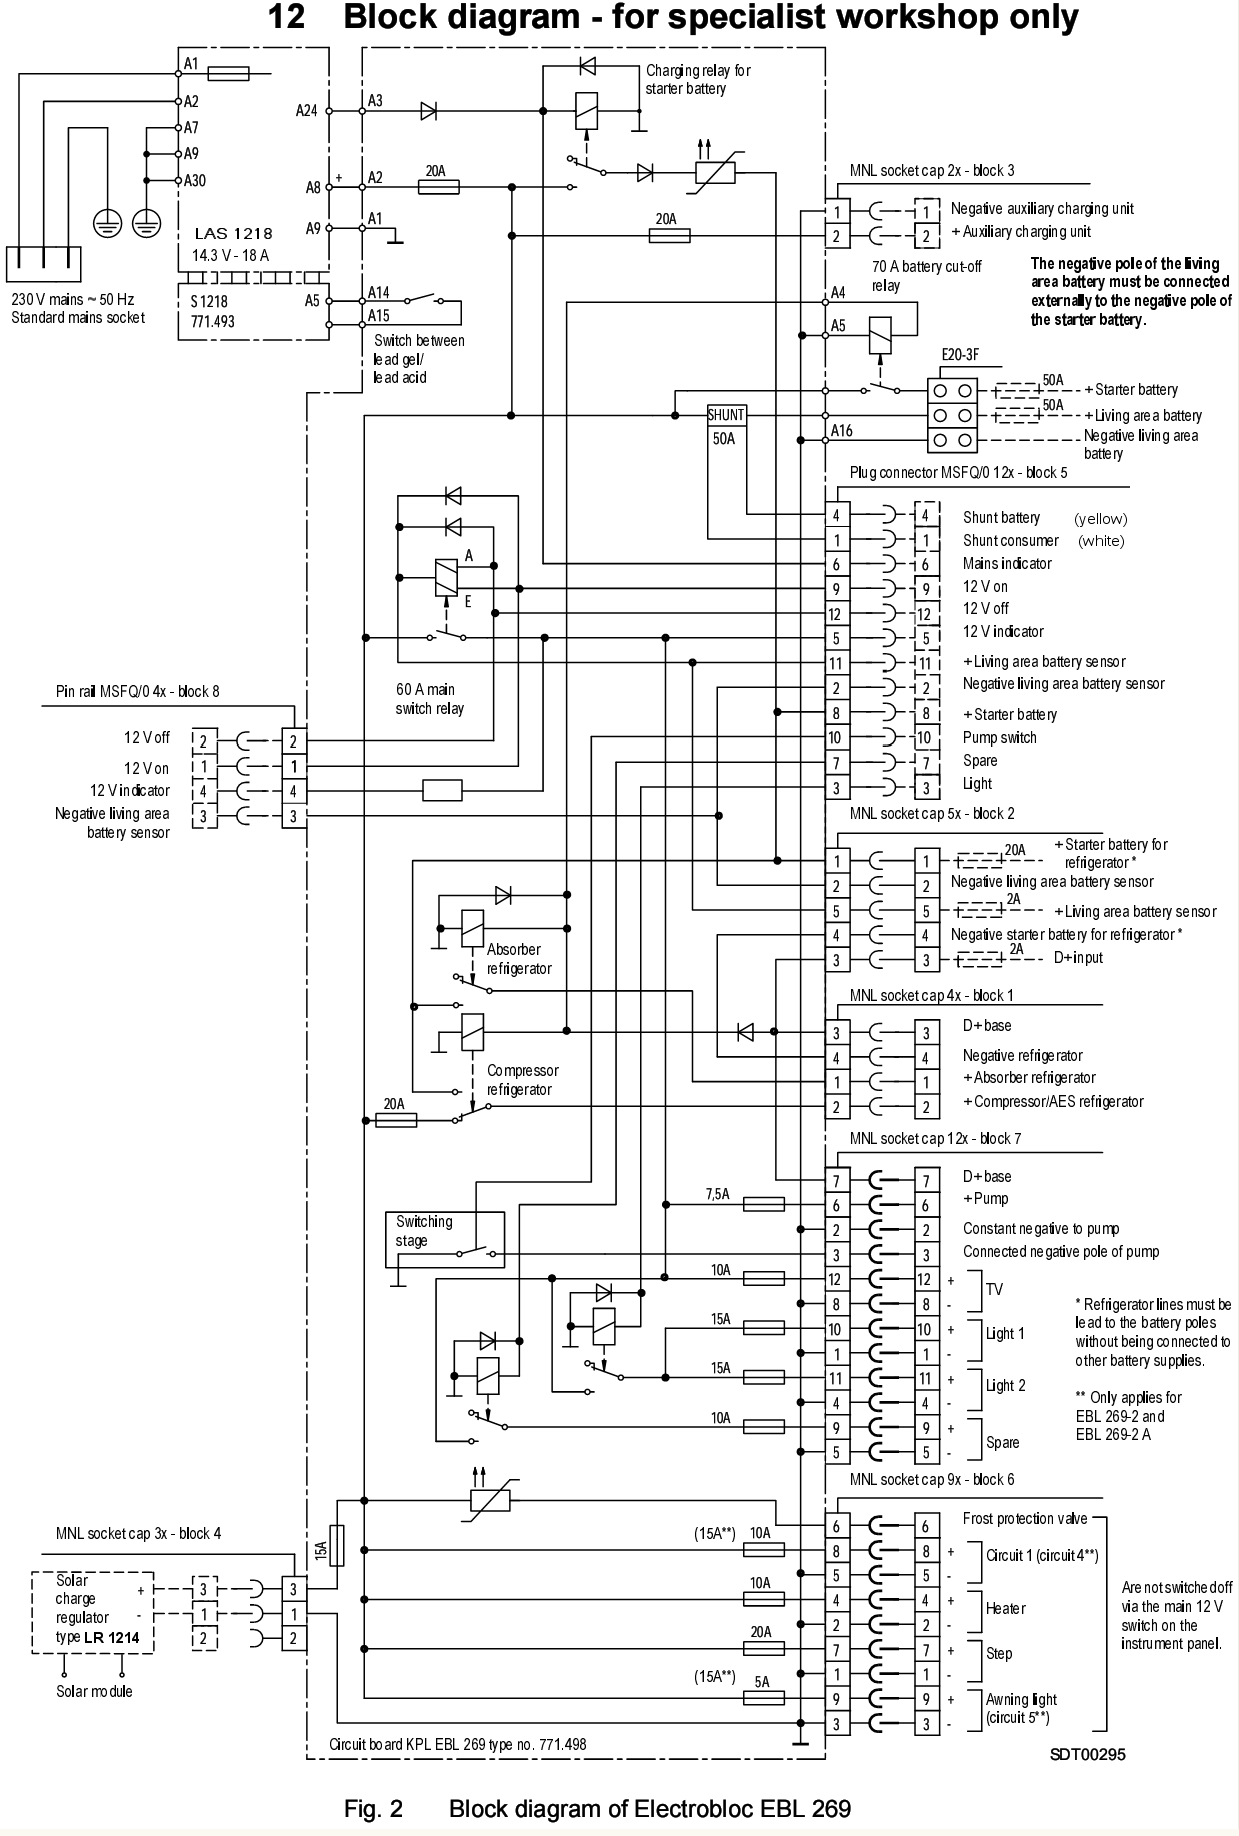 EBL 269 circuit diagram (260 kB)